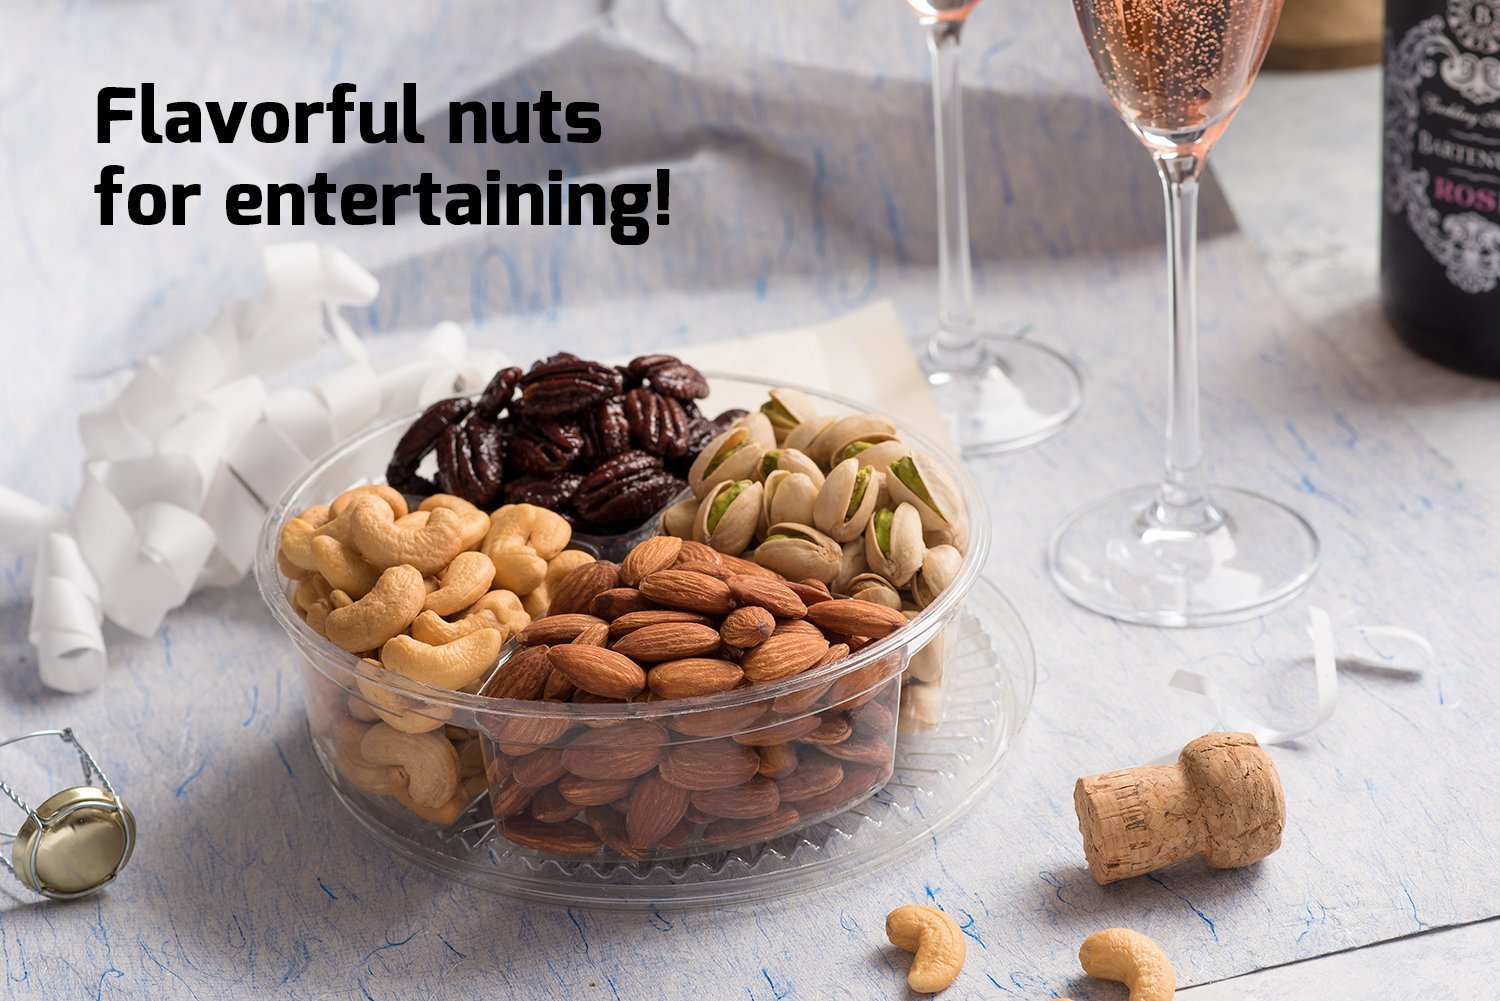 Mother's Day Nuts Gift Basket | Medium 4-Sectional Delicious Variety Mixed Nuts Prime Gift | Healthy Fresh Gift Idea For Christmas, Thanksgiving, Mothers & Fathers Day, And Birthday by Nut Cravings (Image #5)